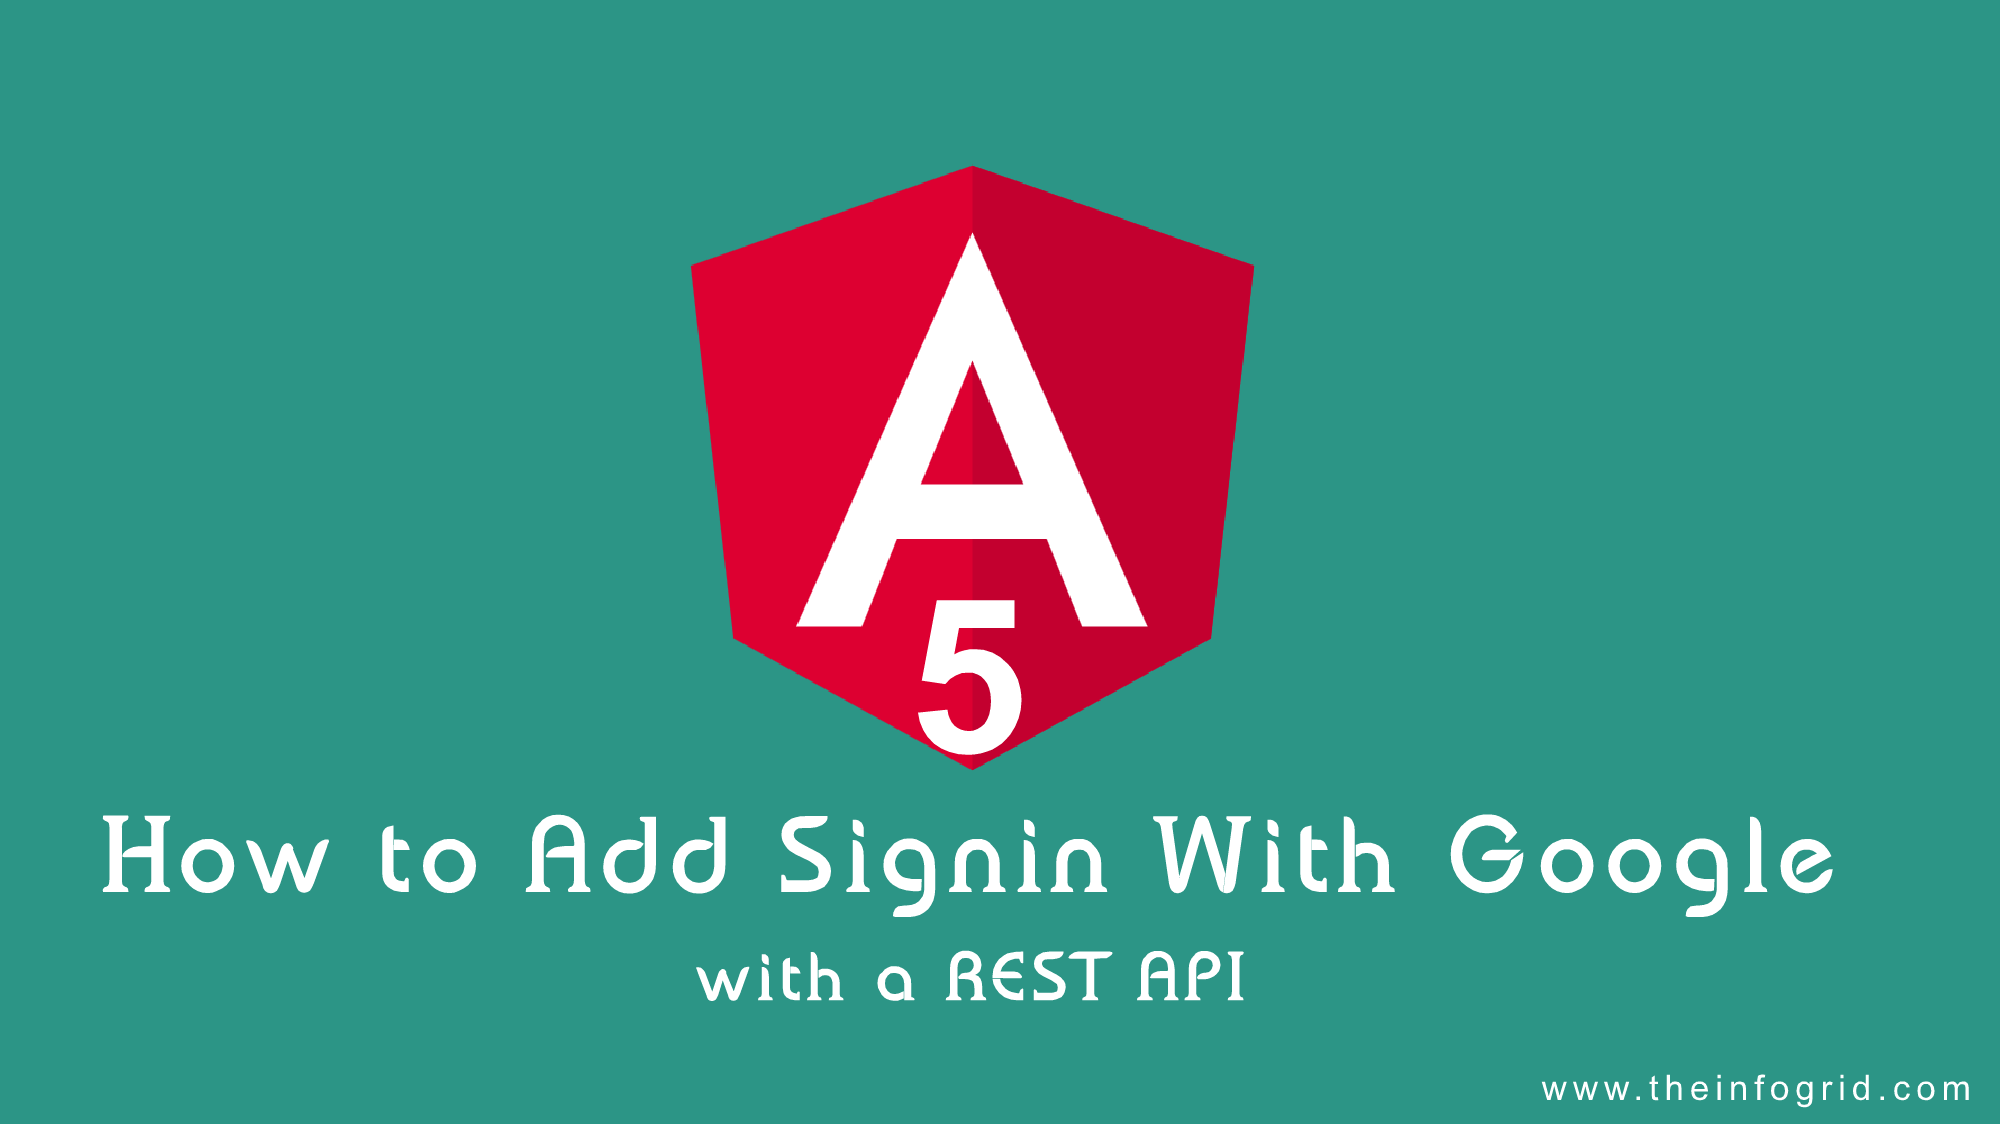 How to Implement Sign-in with Google in Angular and a REST API